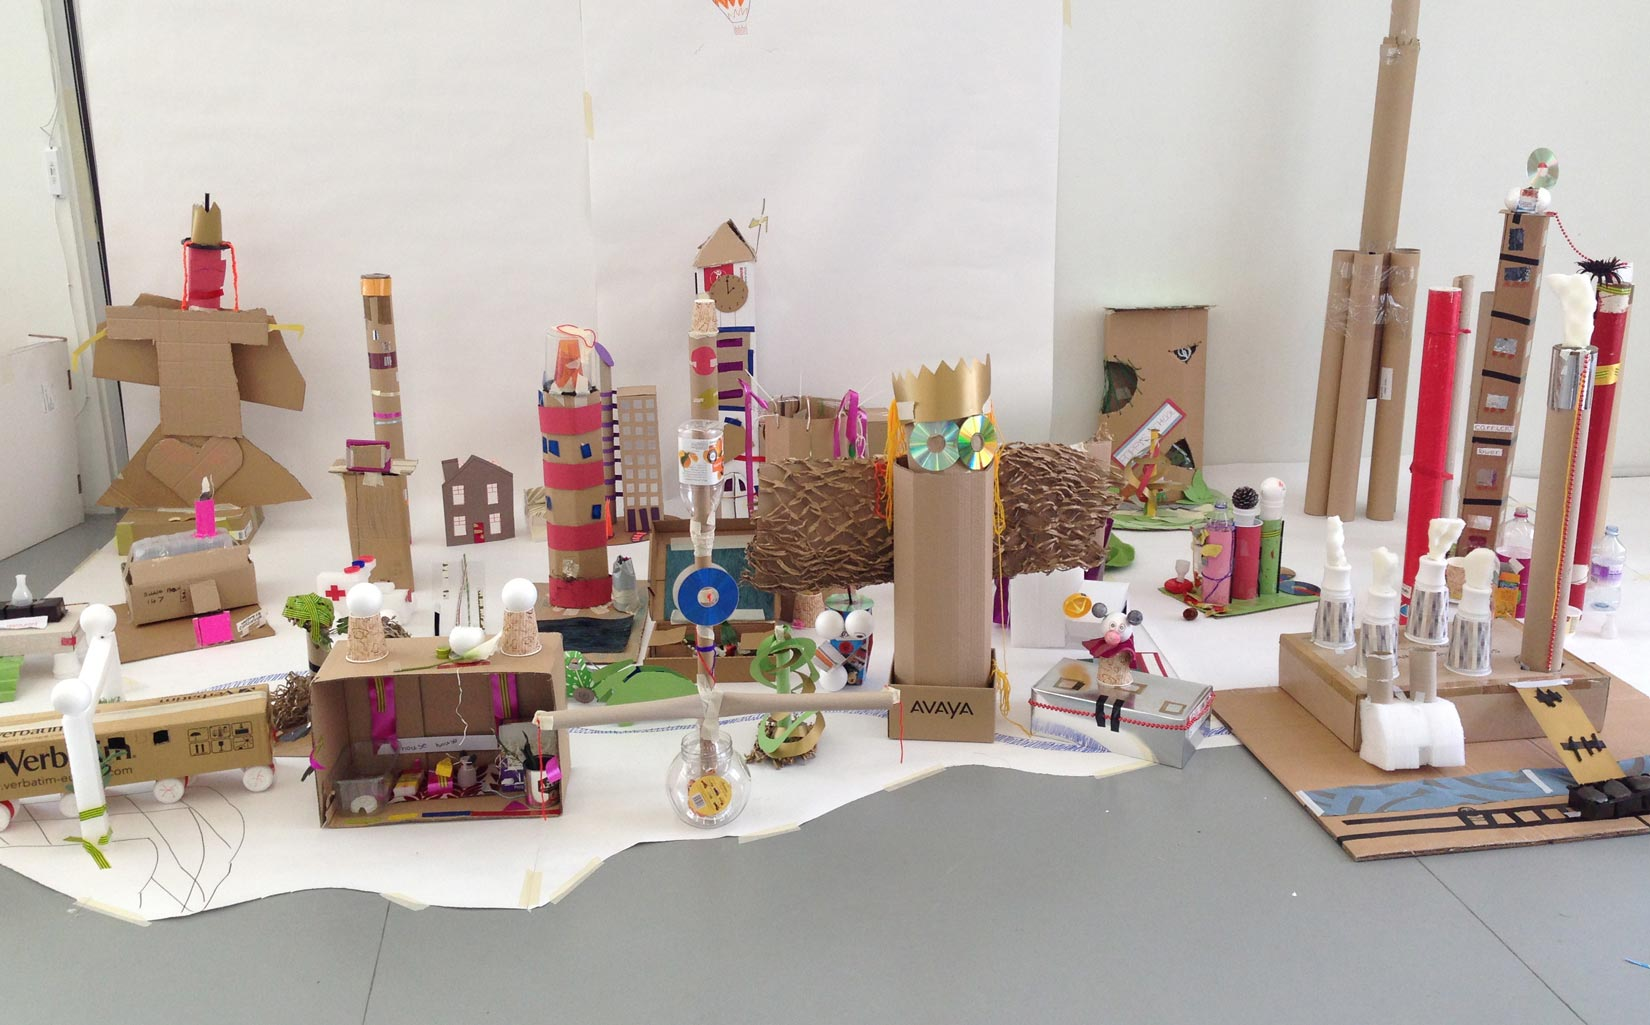 Family Architecture Day, Hepworth Gallery, Wakefield, model